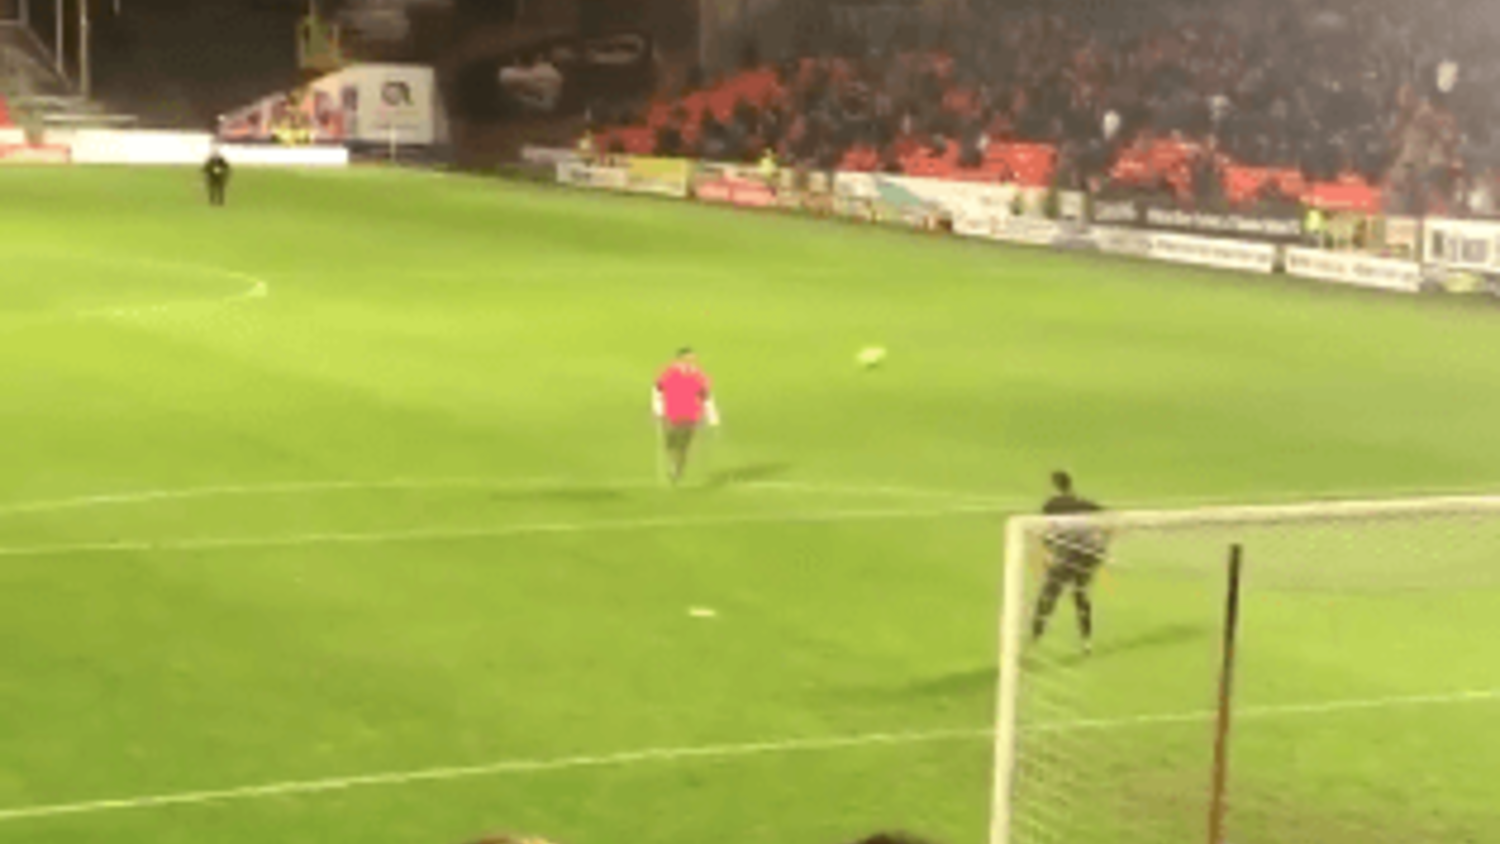 Fan with one leg scores worldie during half-time at Dundee United